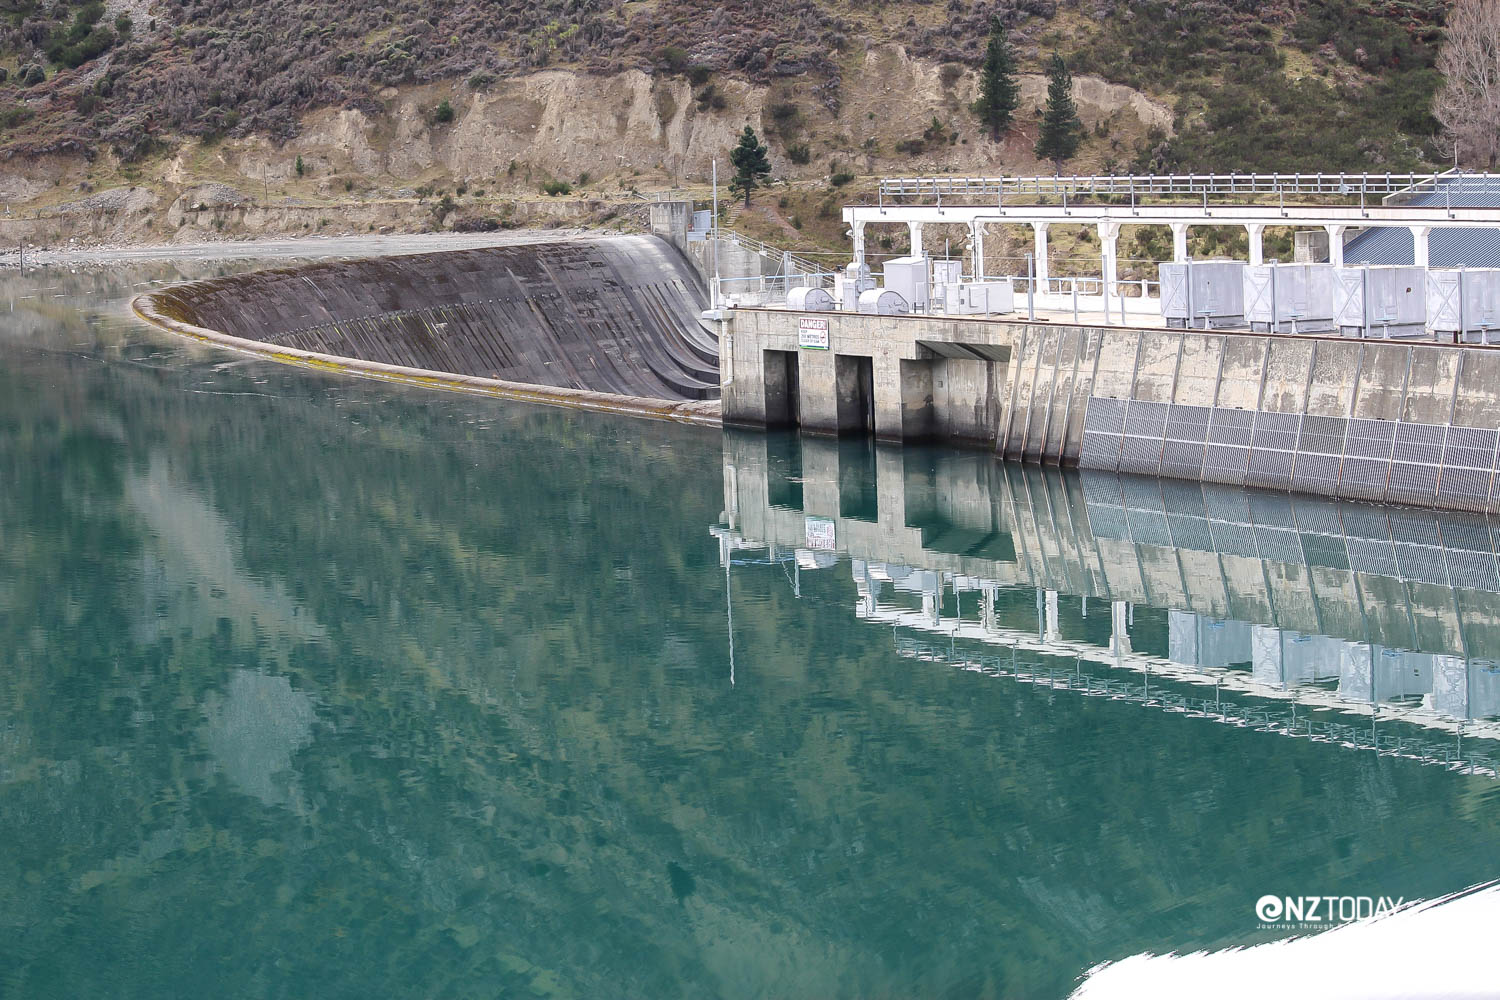 The Waitaki dam, with its unique overflow system